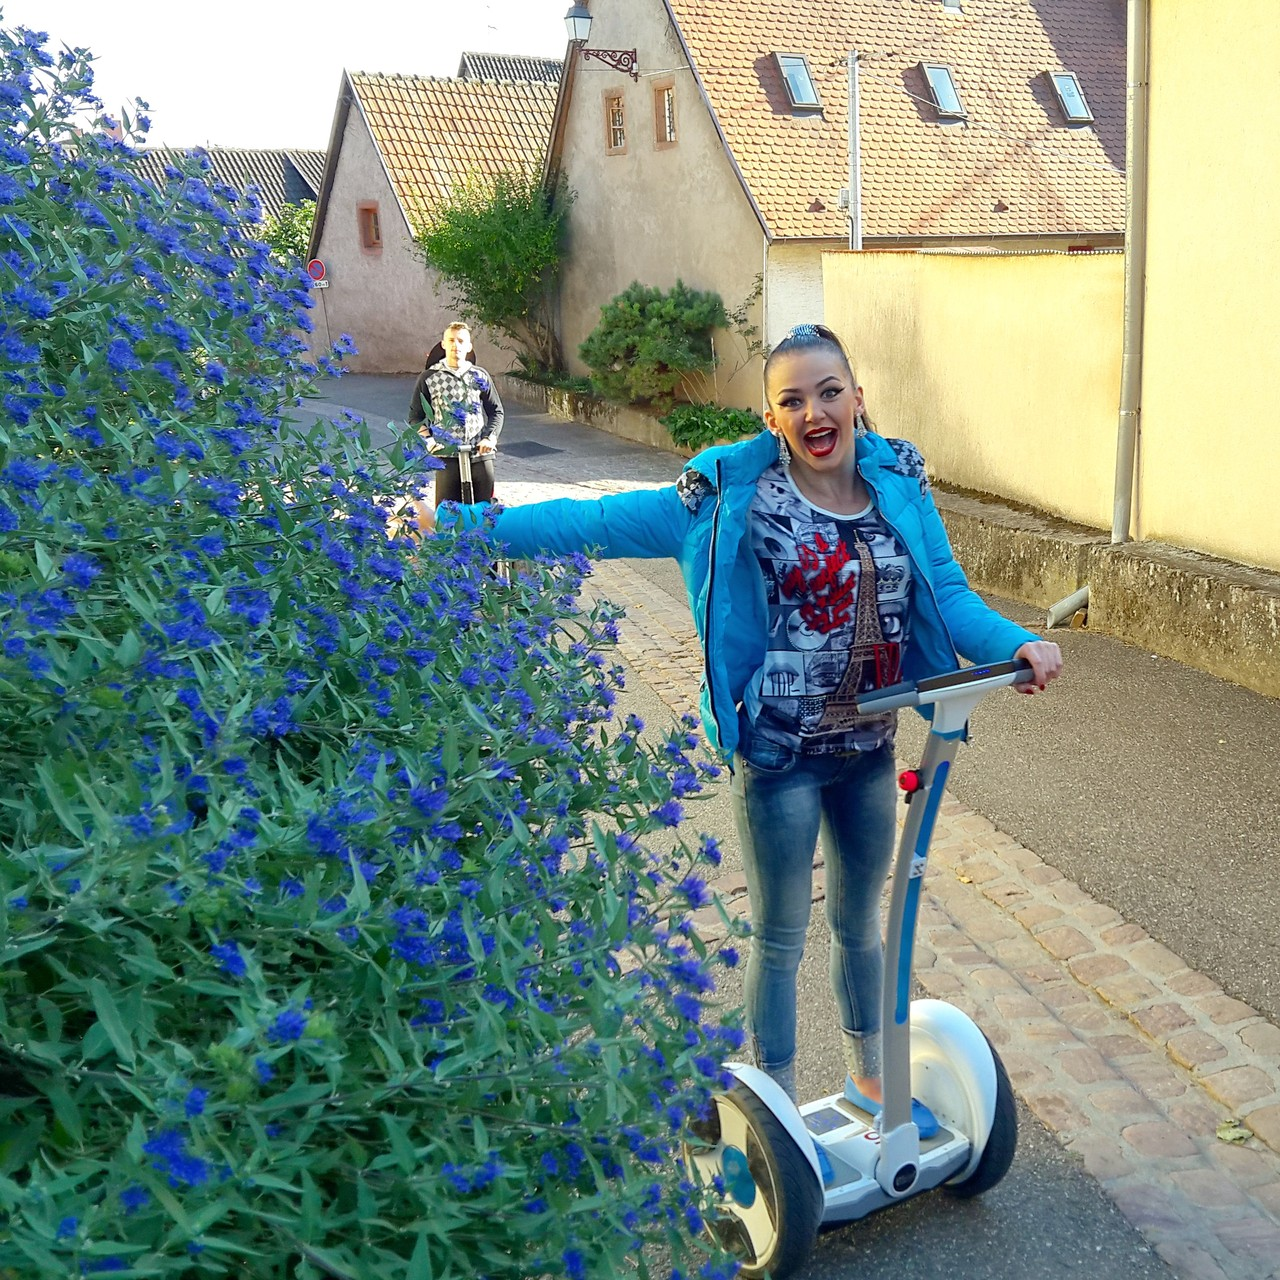 FUN MOVING GYROPODE SEGWAY EN ALSACE - Elsass Cancan, Le Paradis des Sources